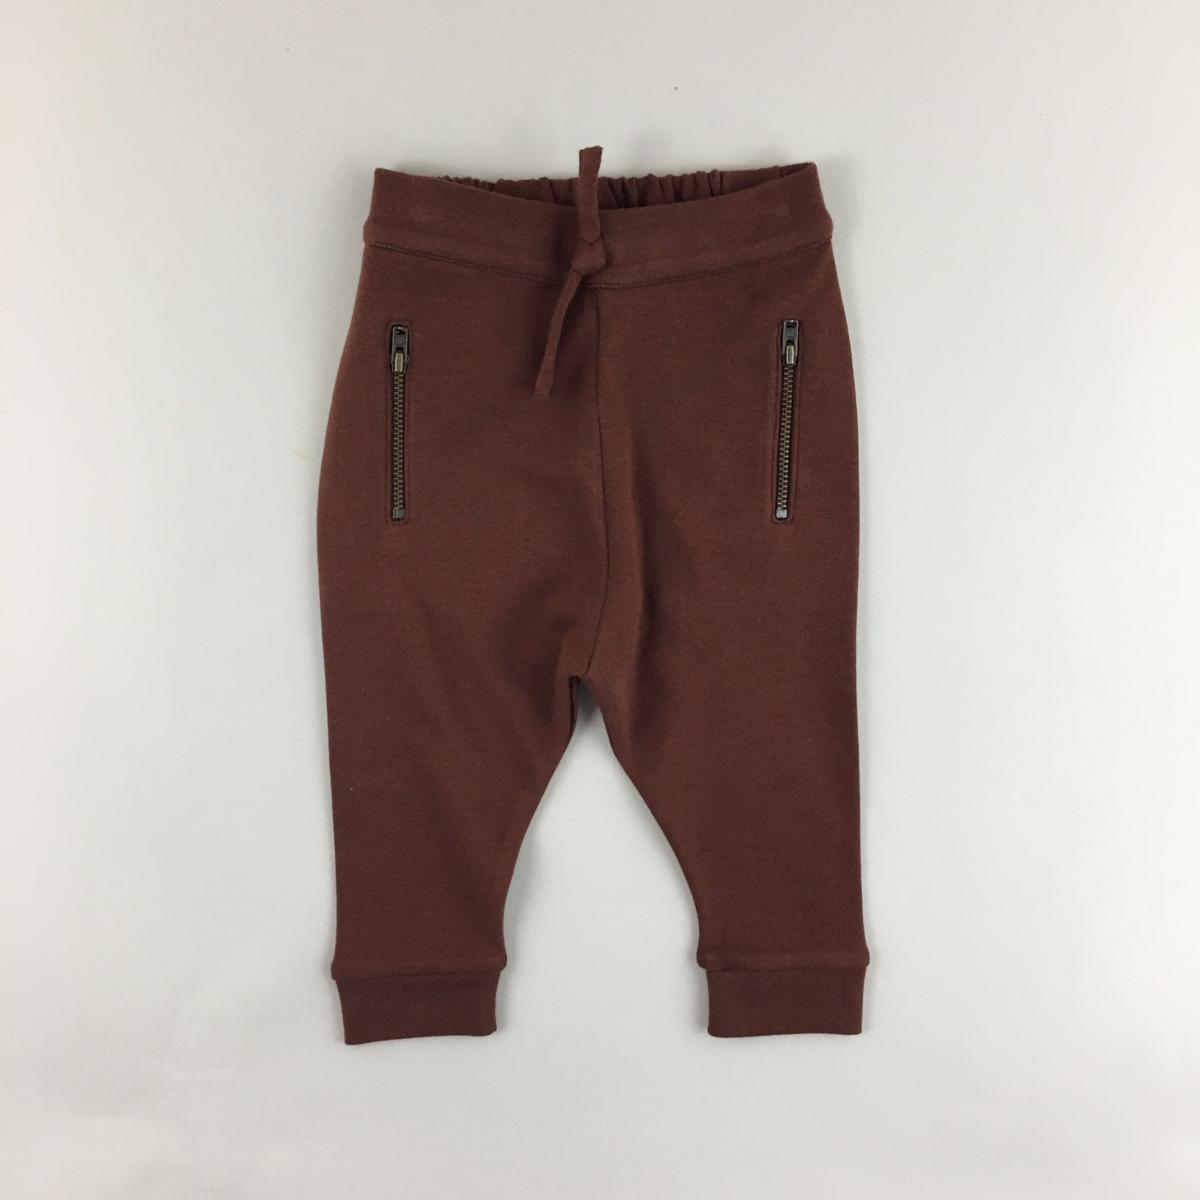 Zipper Pocket Pants